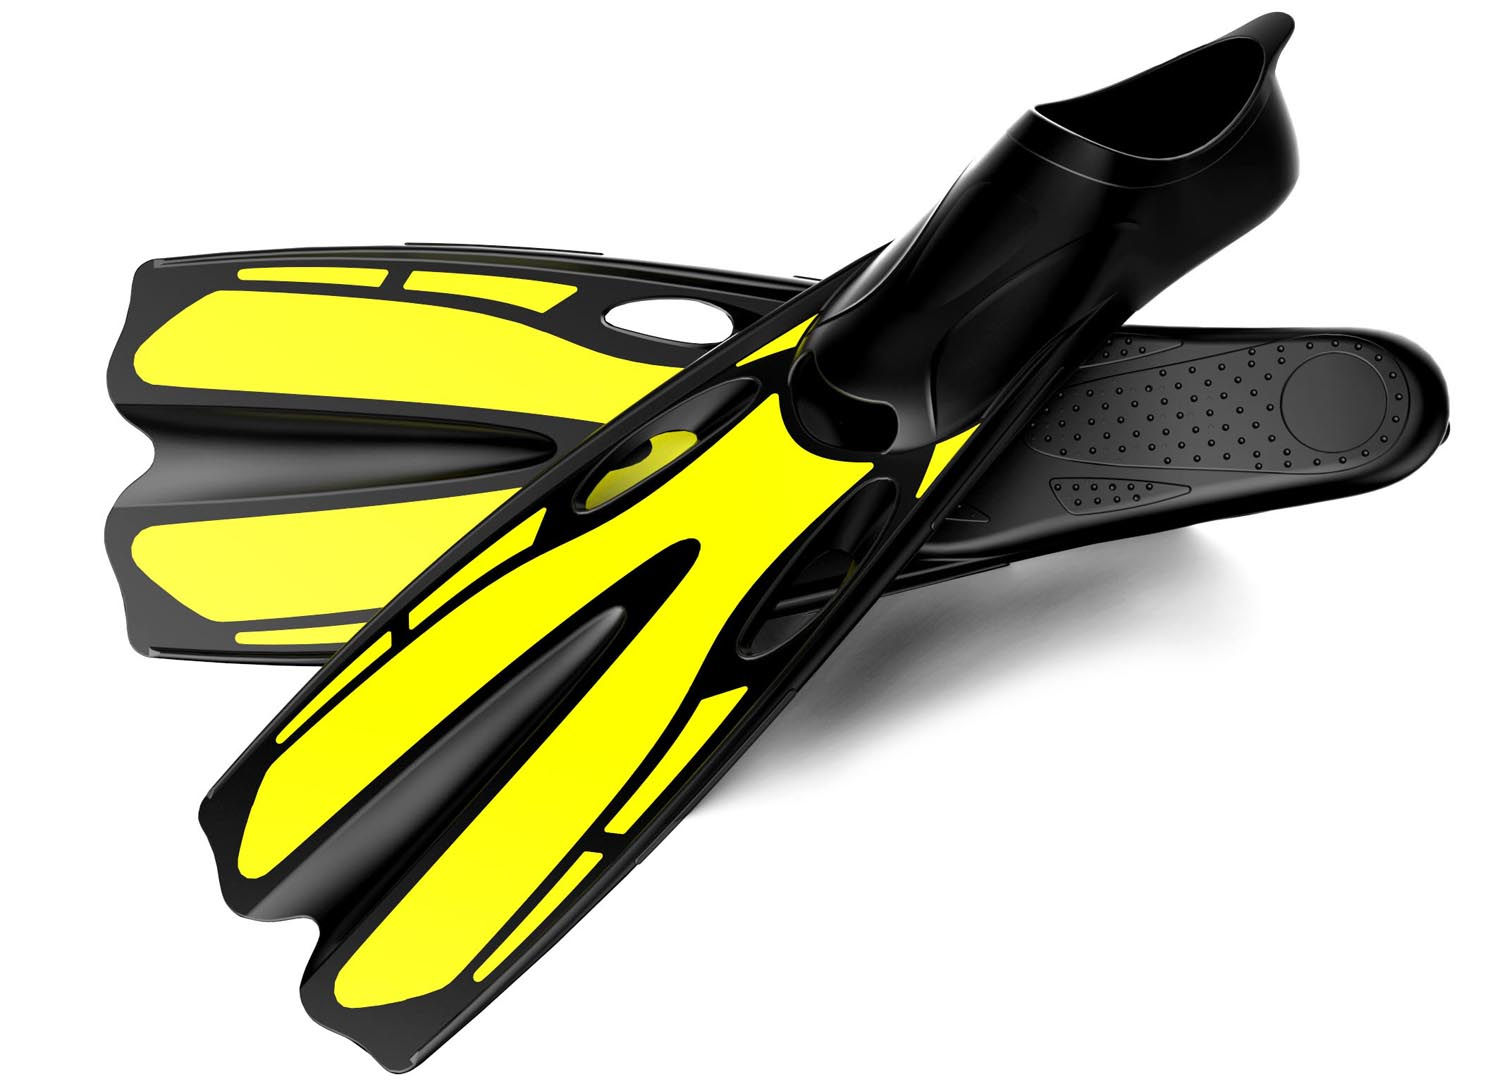 diving fins, swimming fins, diving set